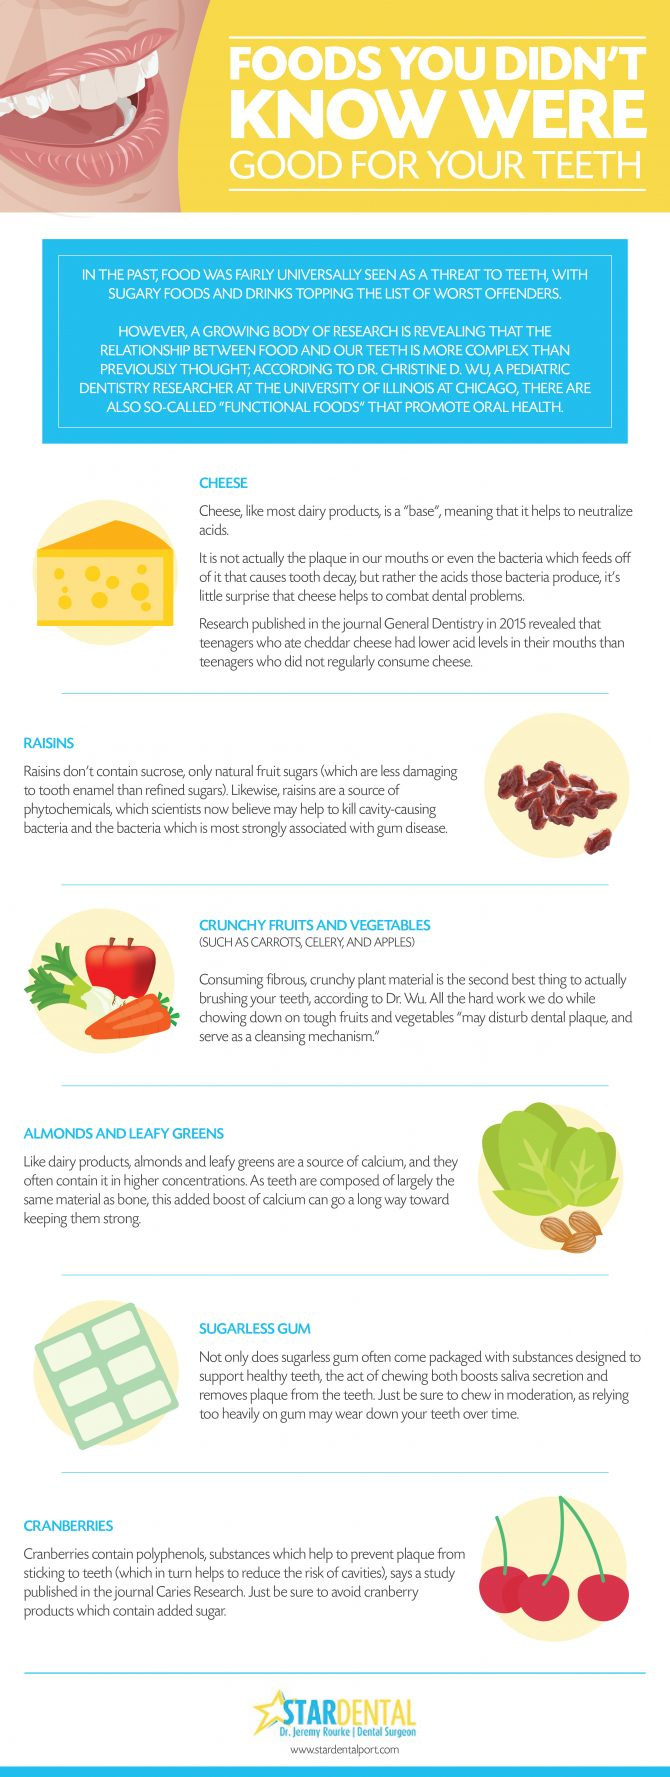 5-Foods-You-Didnt-Know-Were-Good-for-Your-Teeth-Infographic-670x1777